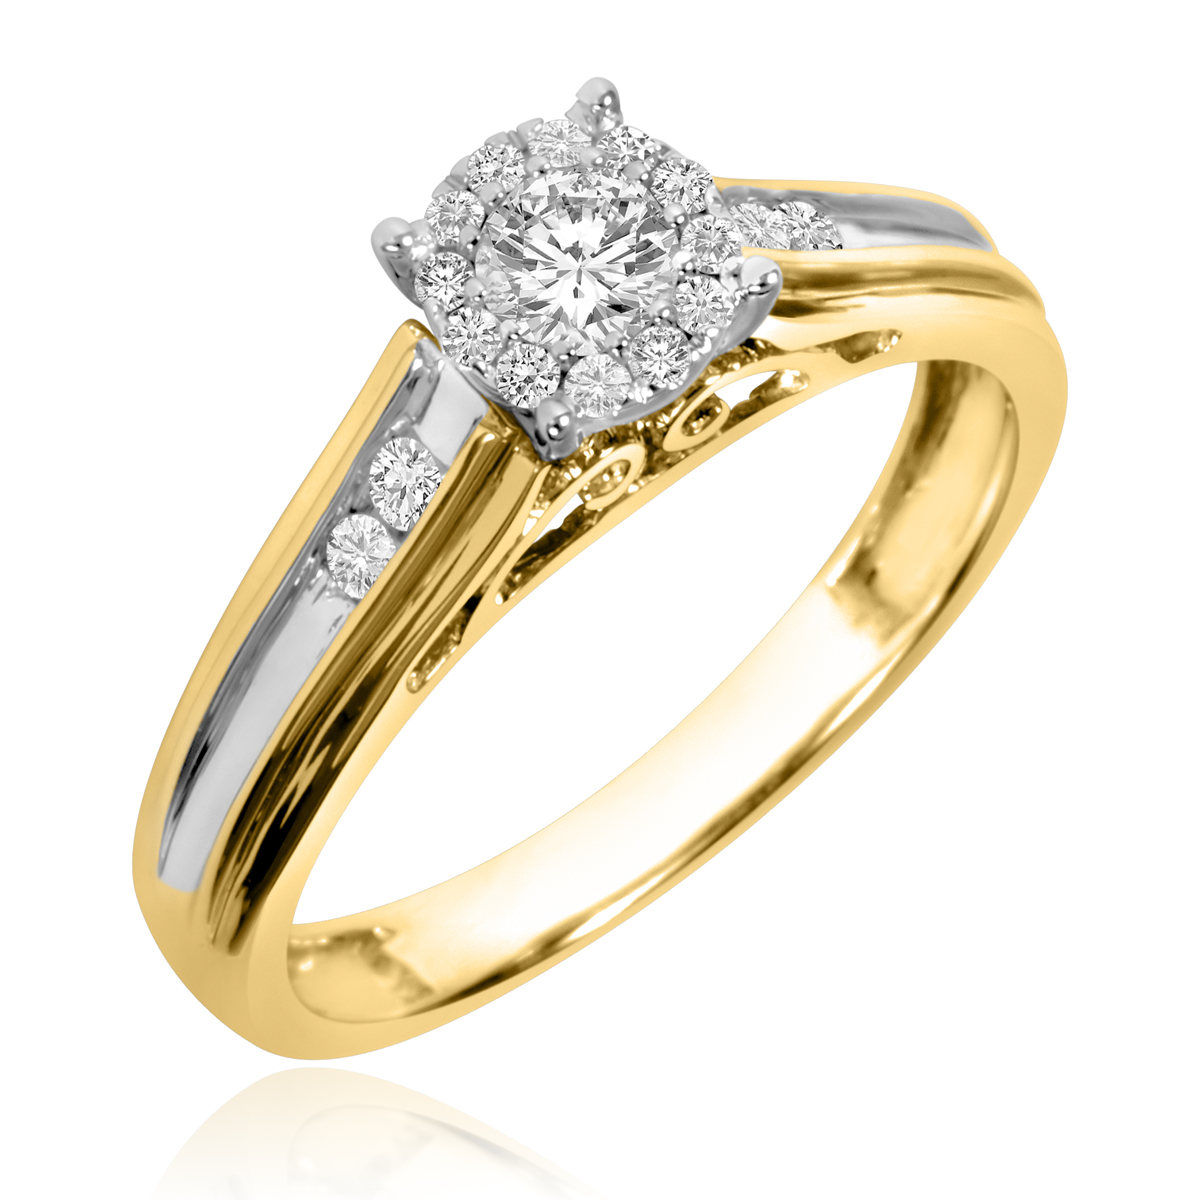 1/2 CT. T.W. Round Cut Diamond Ladies Engagement Ring 14K Yellow Gold- Size 8